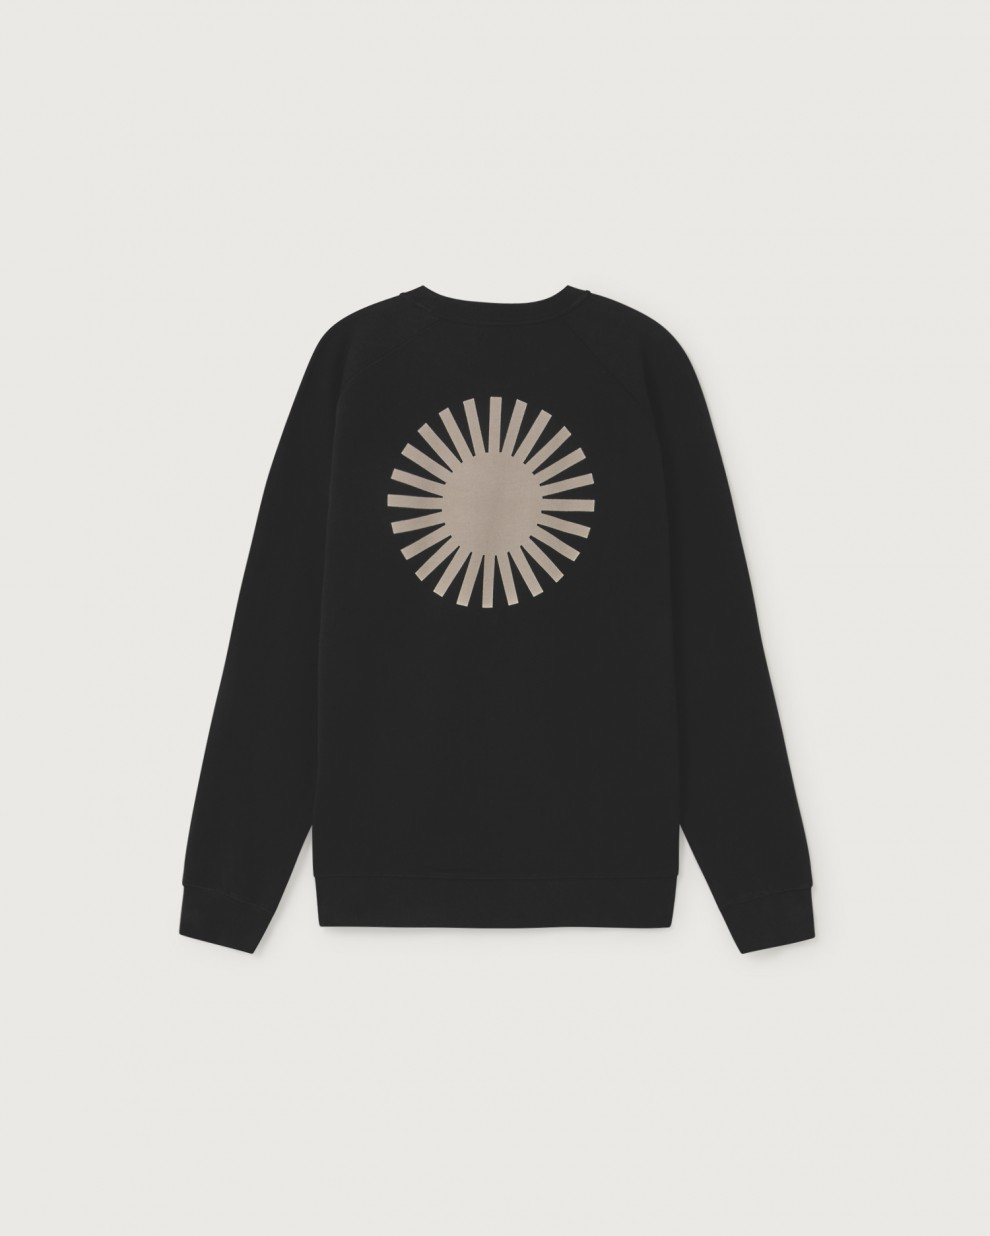 SOL BLACK SWEATSHIRT